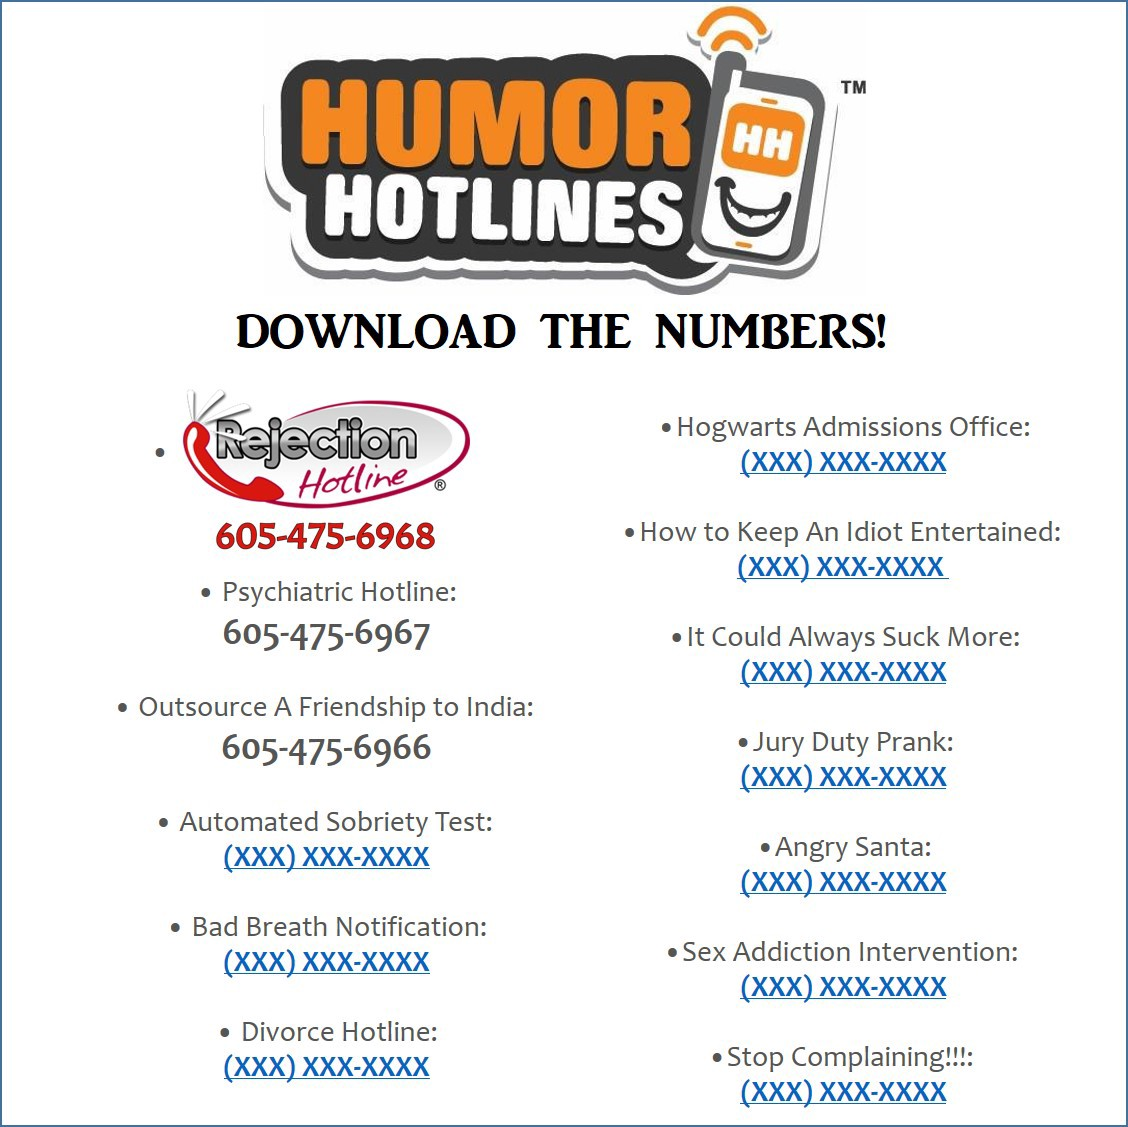 Phone number for dating hotline